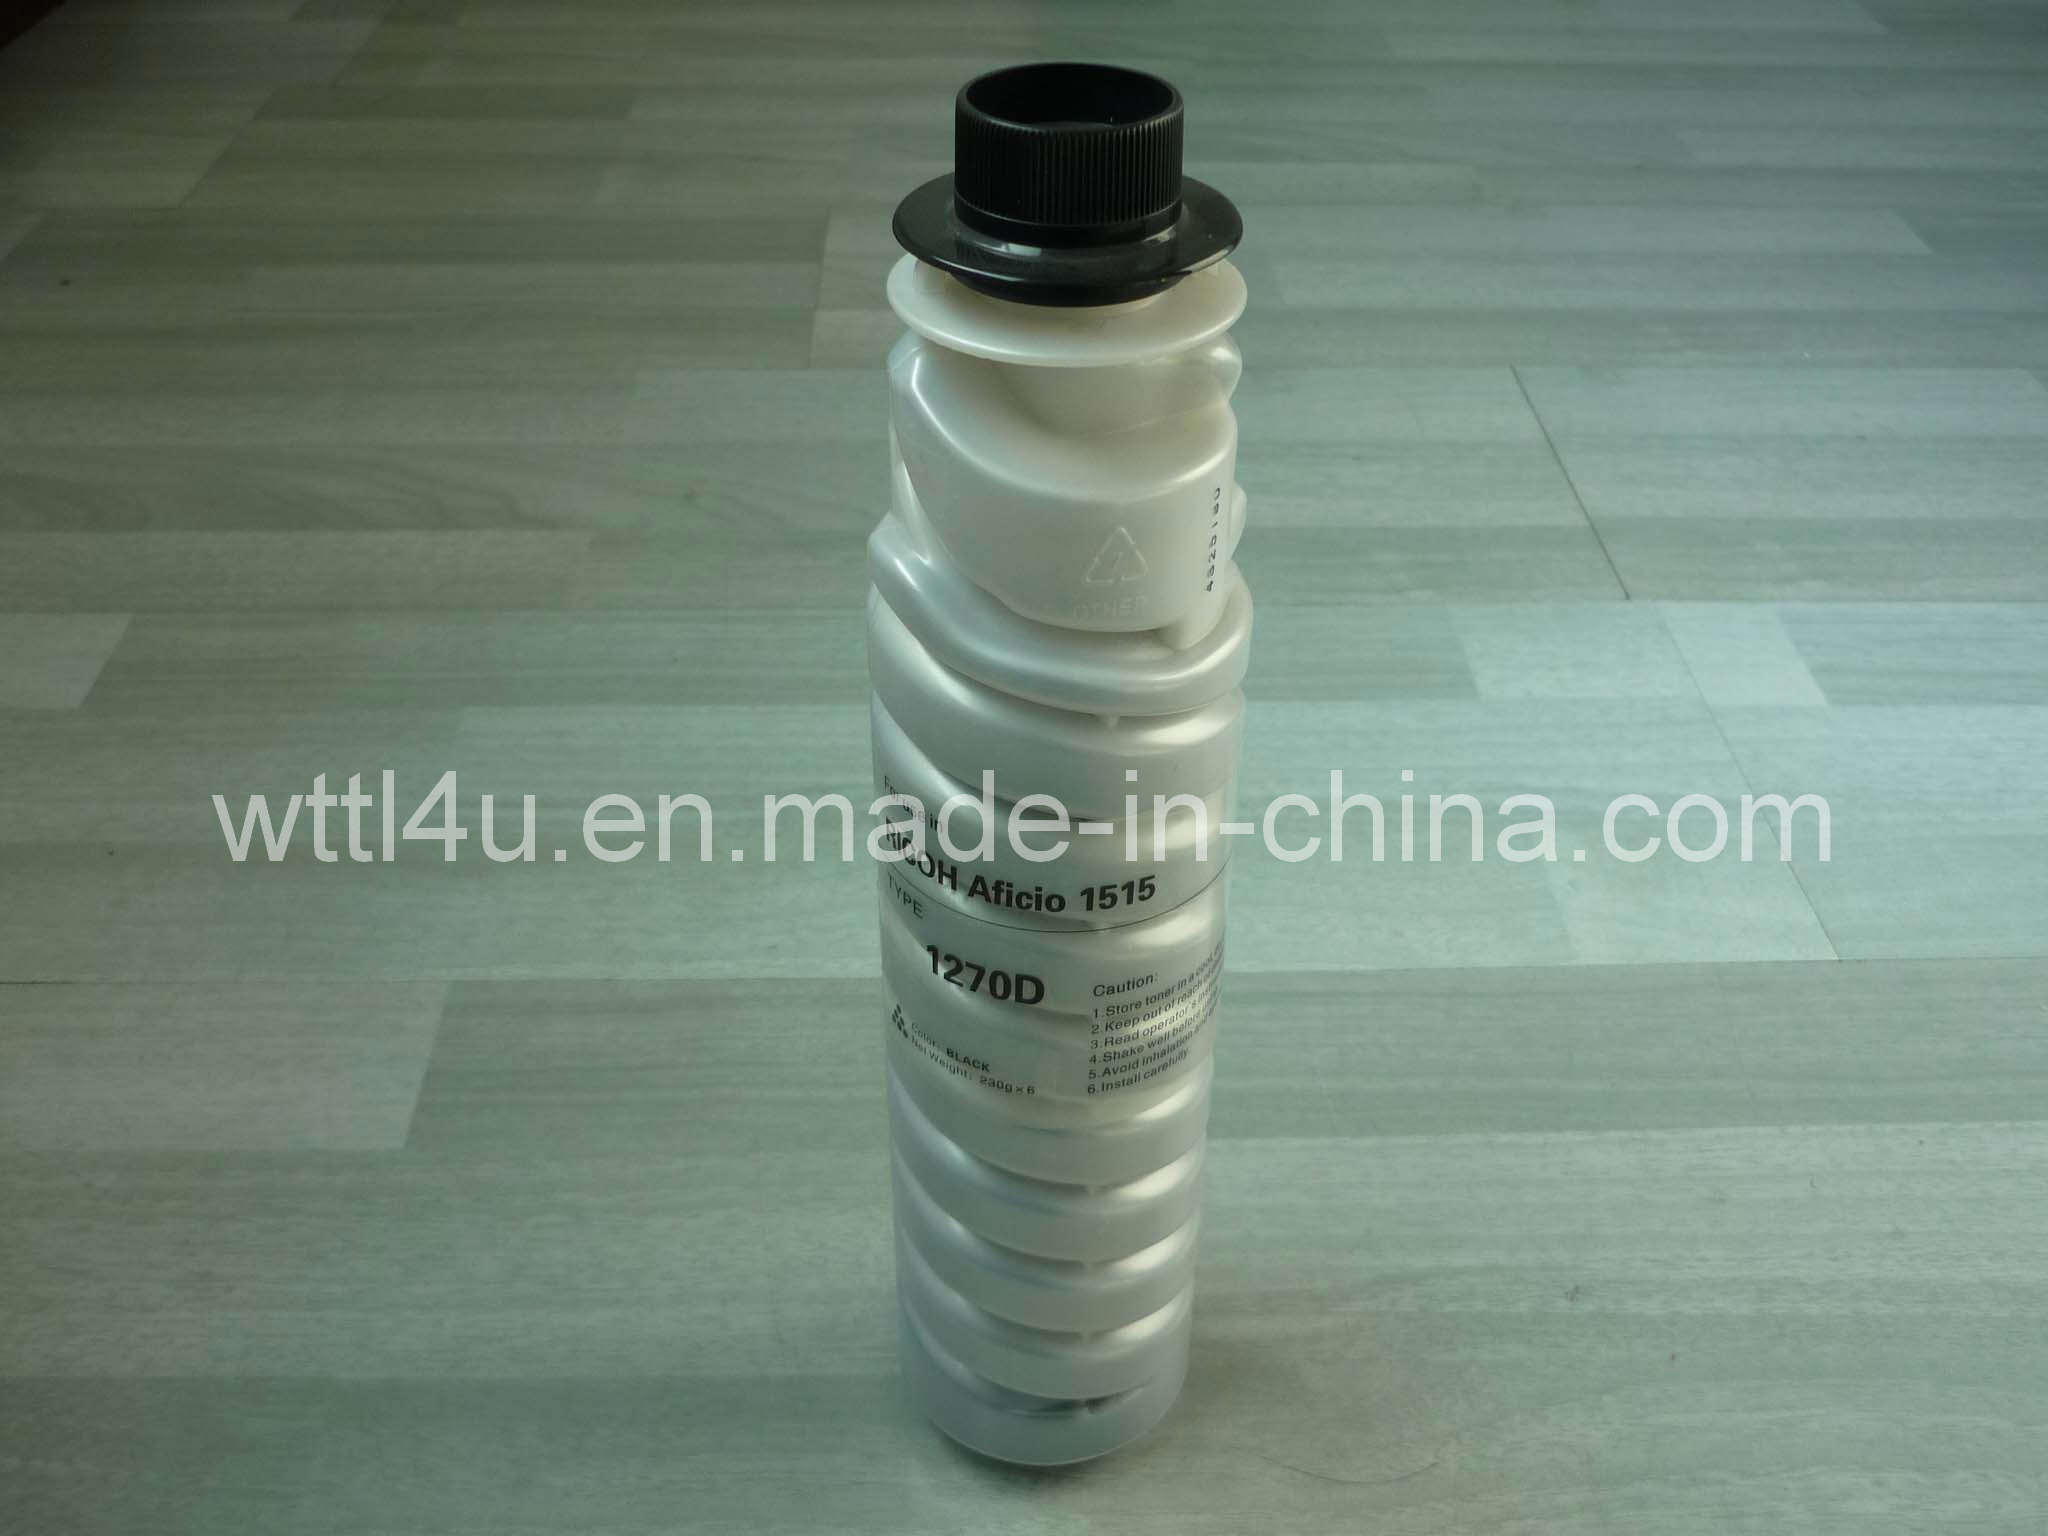 China Toner Cartridge of Ricoh Aficio 1270D (AF-1515, MP-161/171/201) -  China Toner Cartridge, Ricoh Toner Cartridge